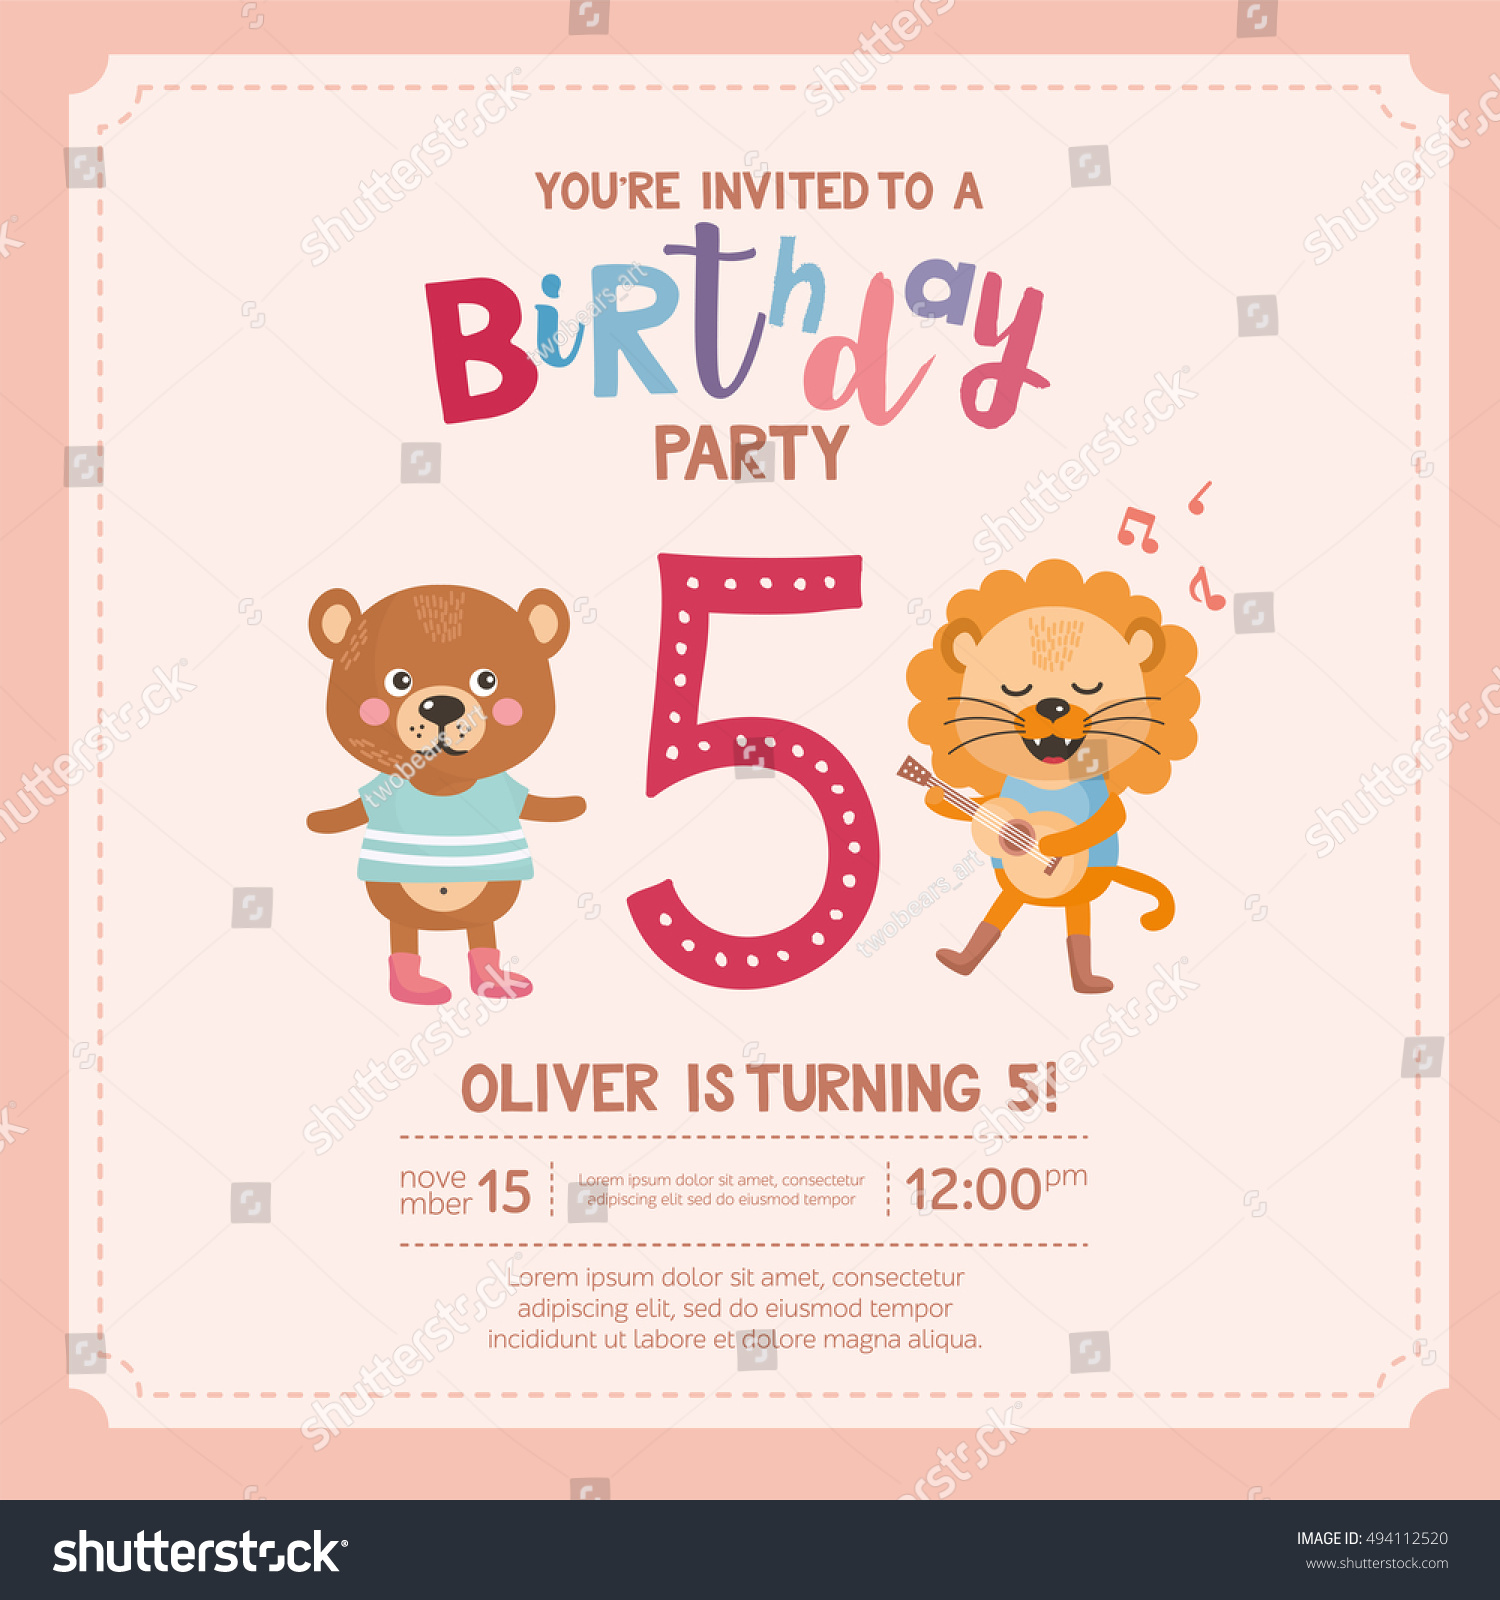 Greeting Card Design With Cute Lion And Bear Happy Birthday Invitation Template For Five Year Old Cartoon Animals Funny Letters